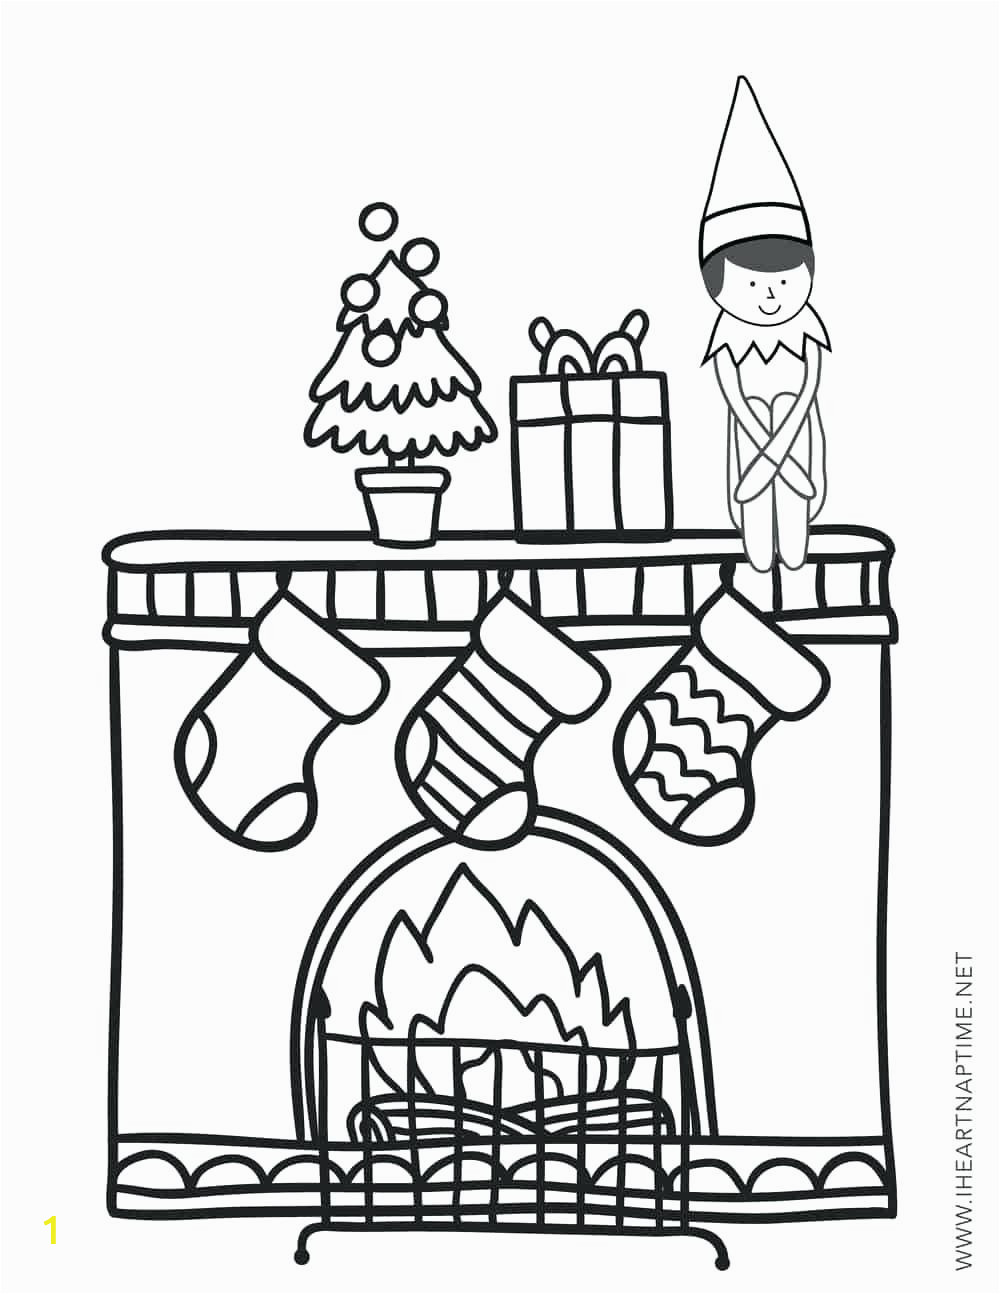 The Elf On the Shelf Coloring Pages | divyajanani.org